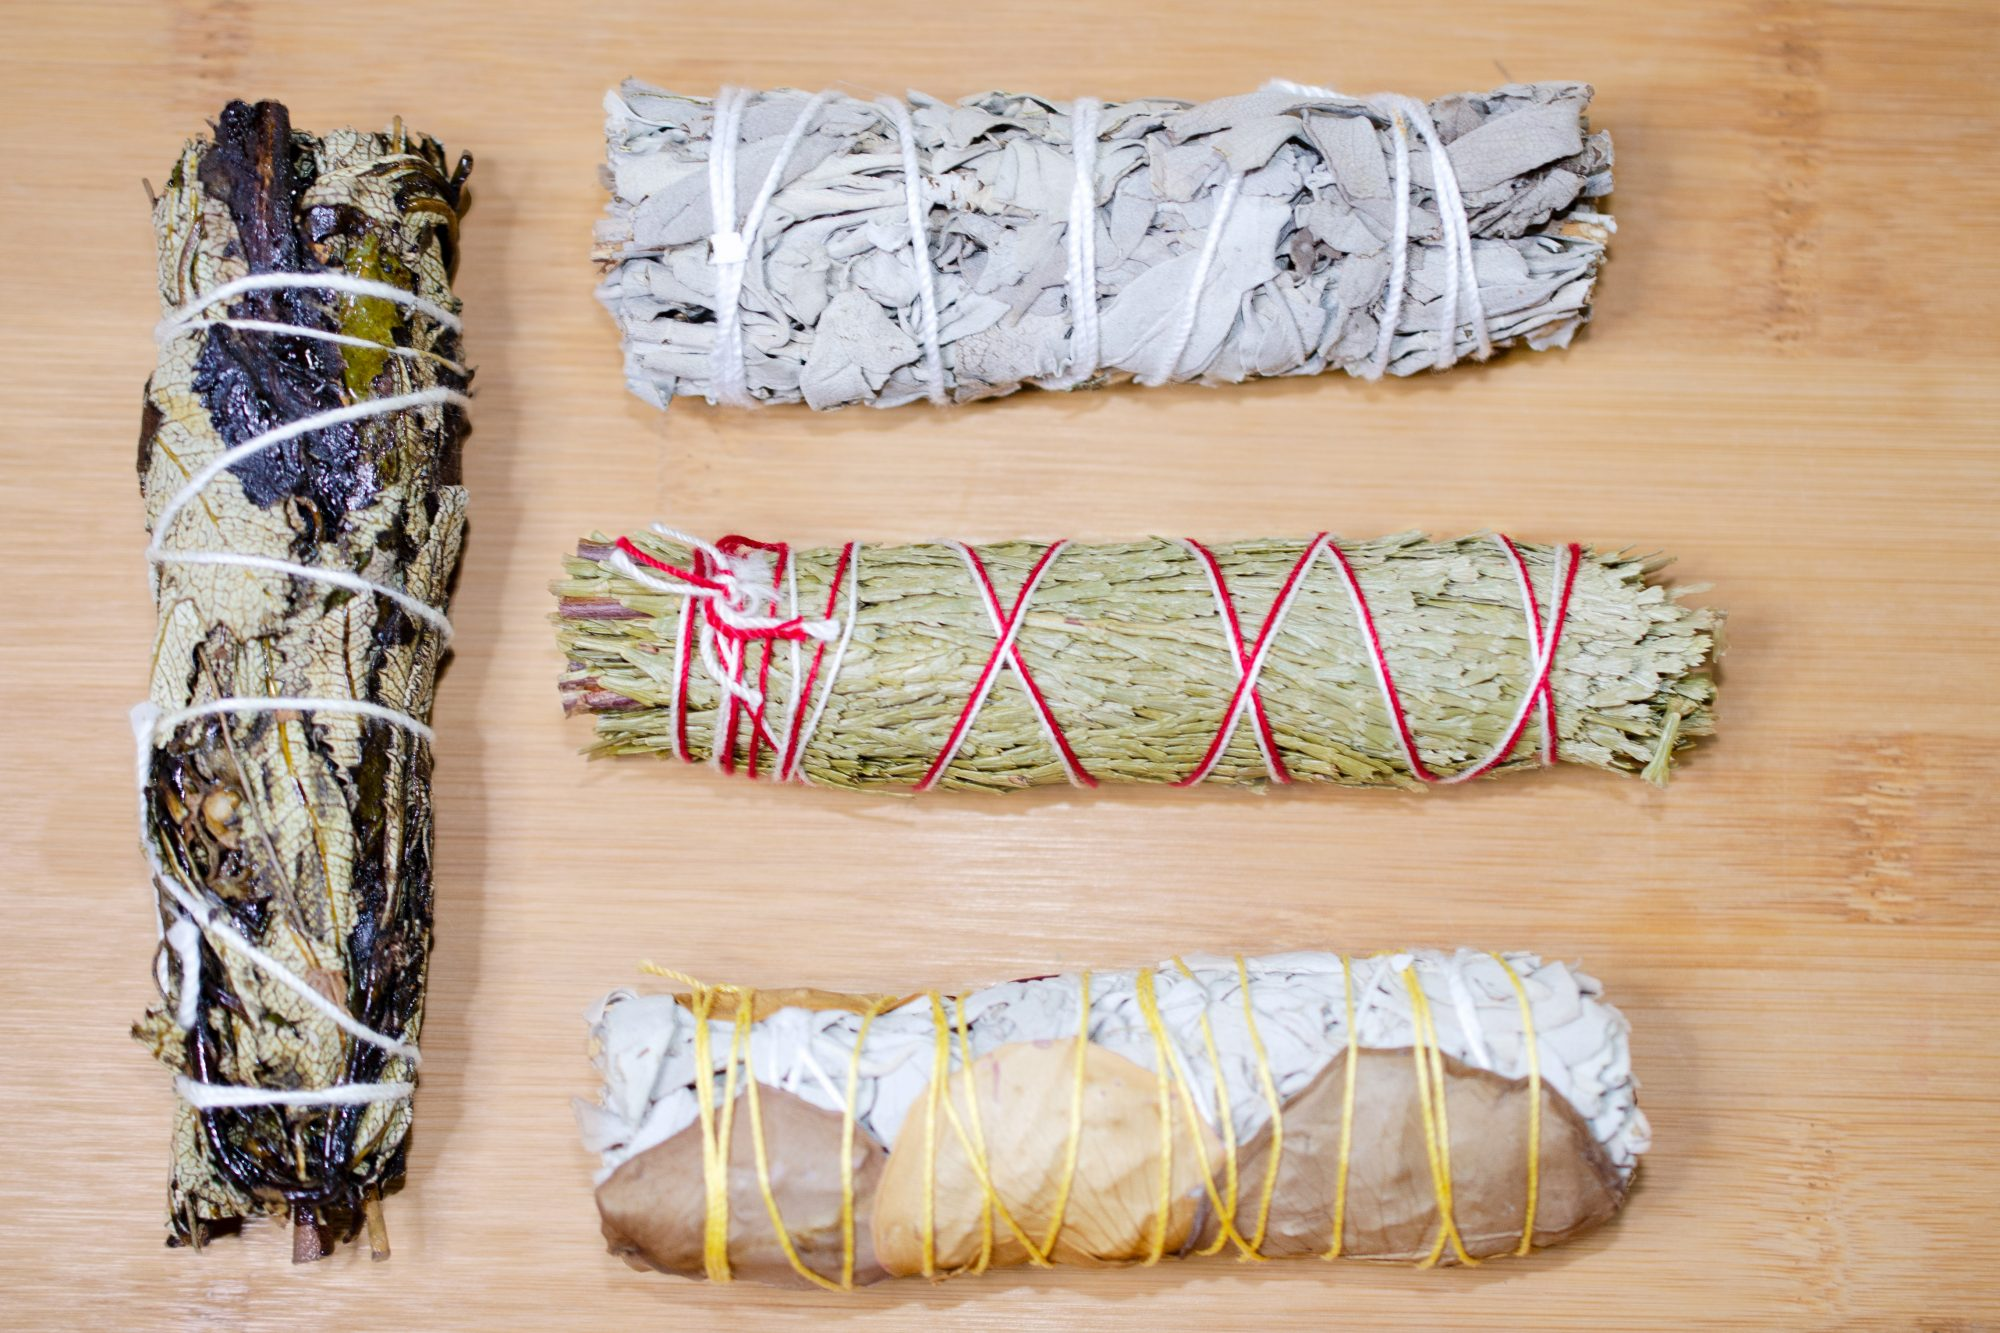 assortment of smudging herb sticks